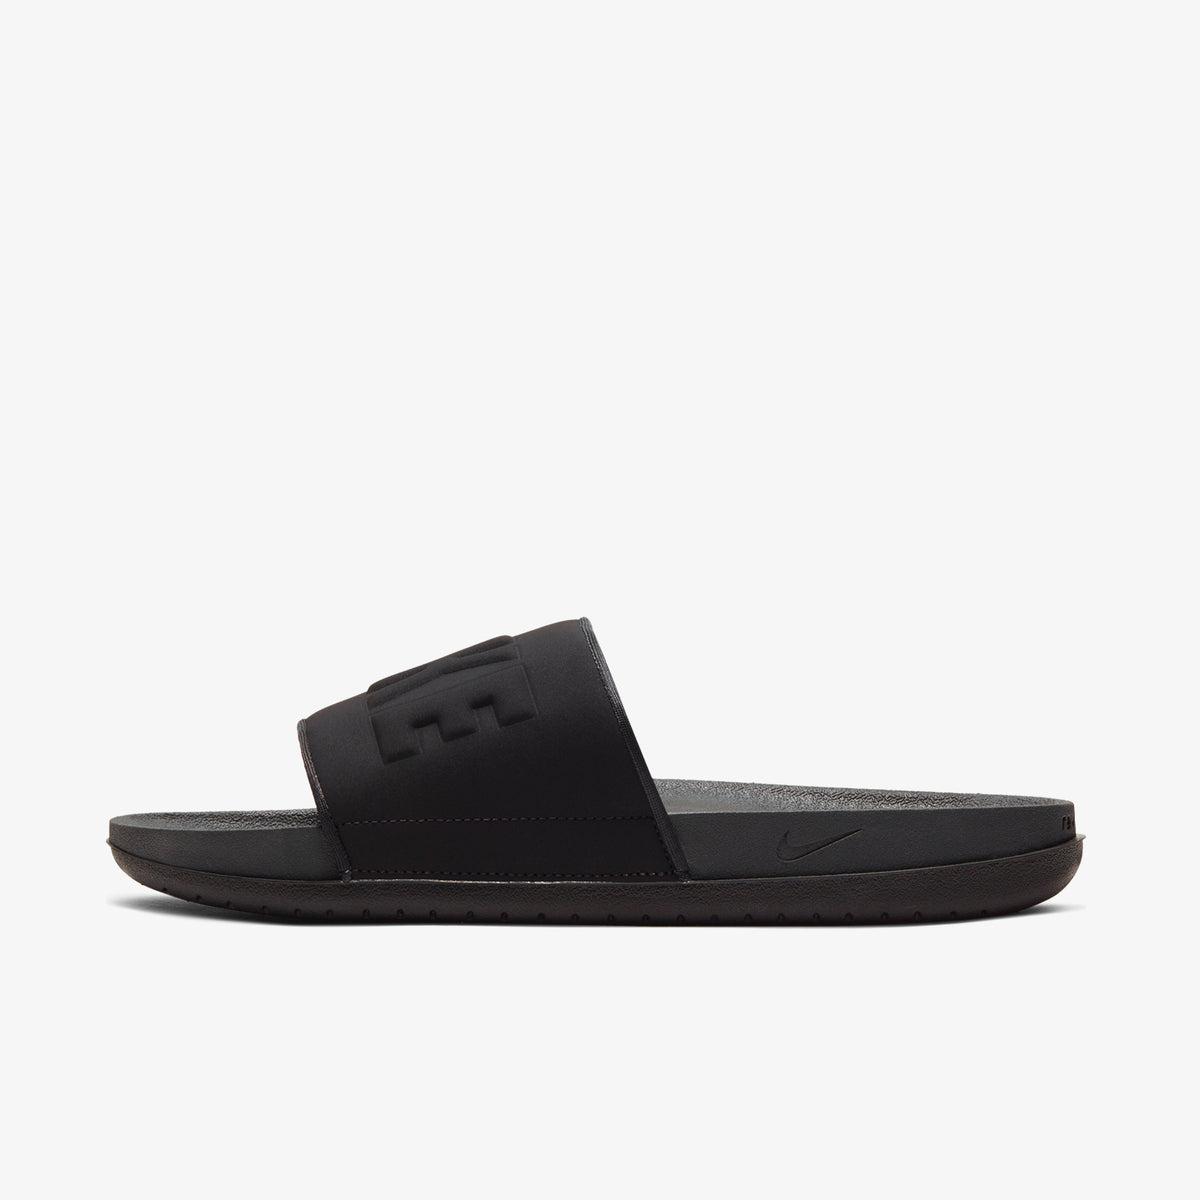 Nike Offcourt Slide - Black